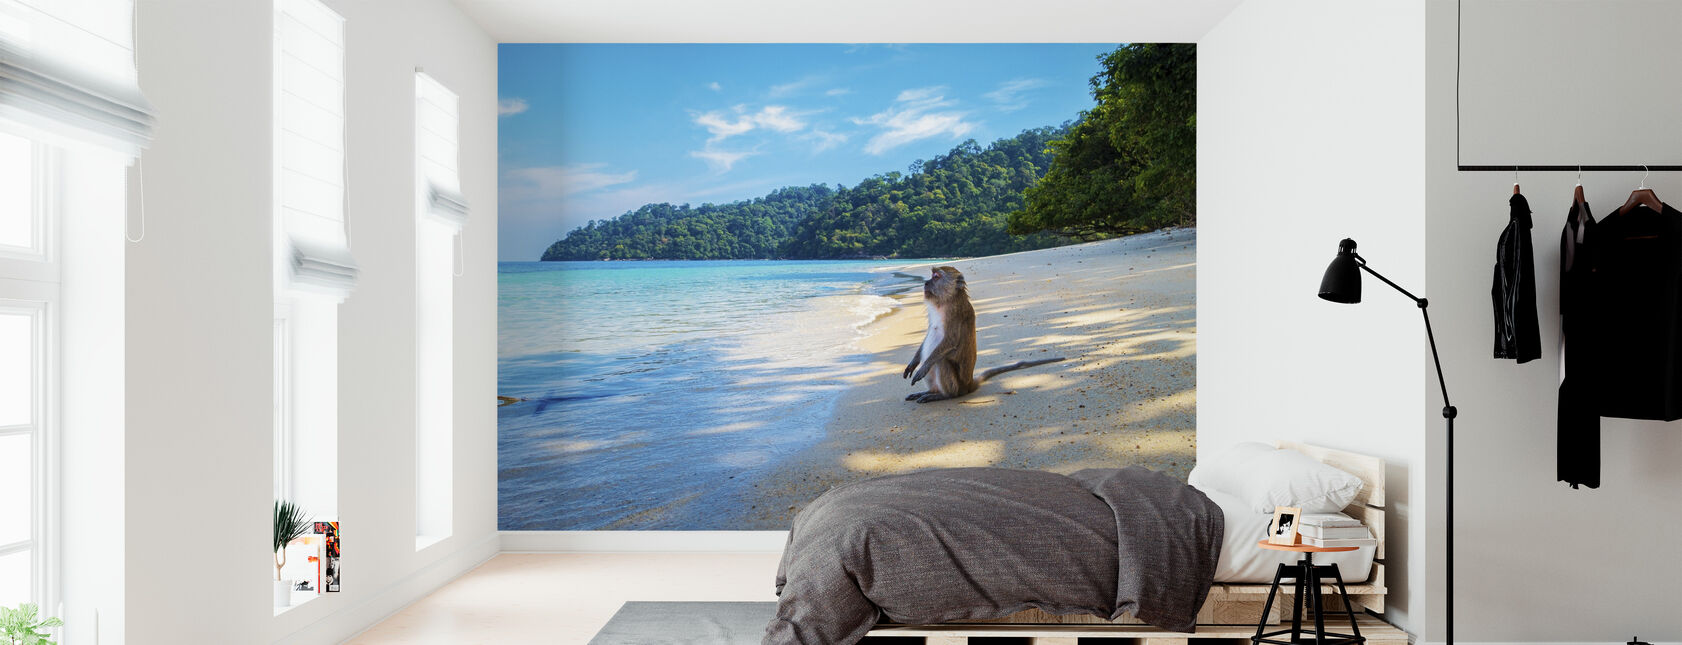 Monkey by the Beach - Wallpaper - Bedroom